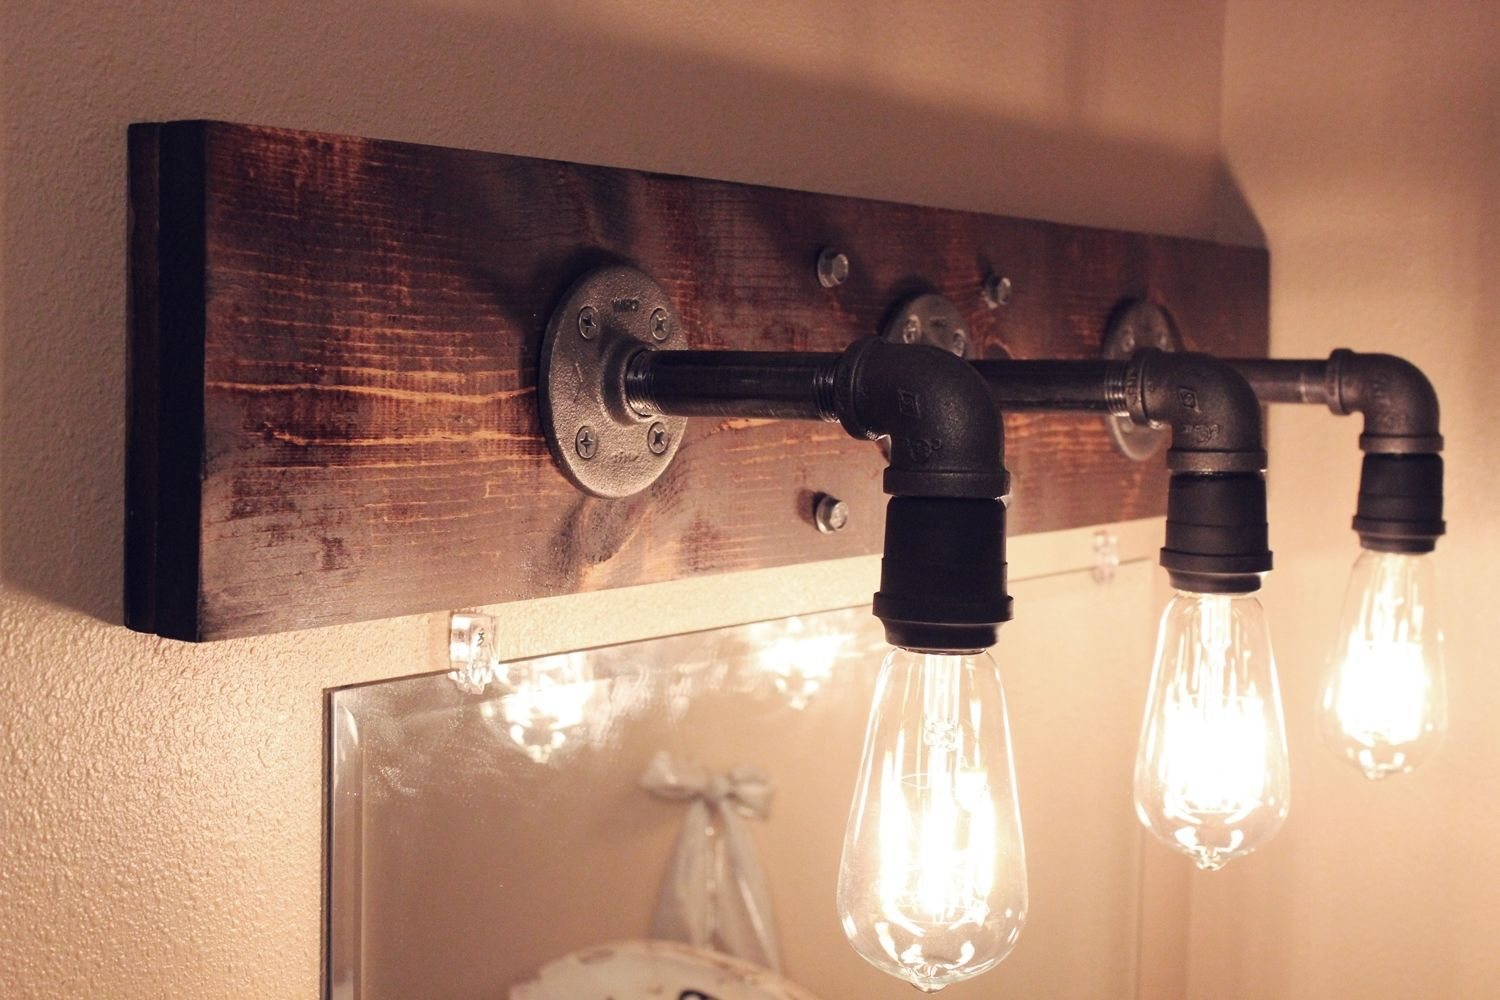 Industrial bathroom fixtures - 11 Ingenious Diy Lighting Fixtures To Try Out This Week End